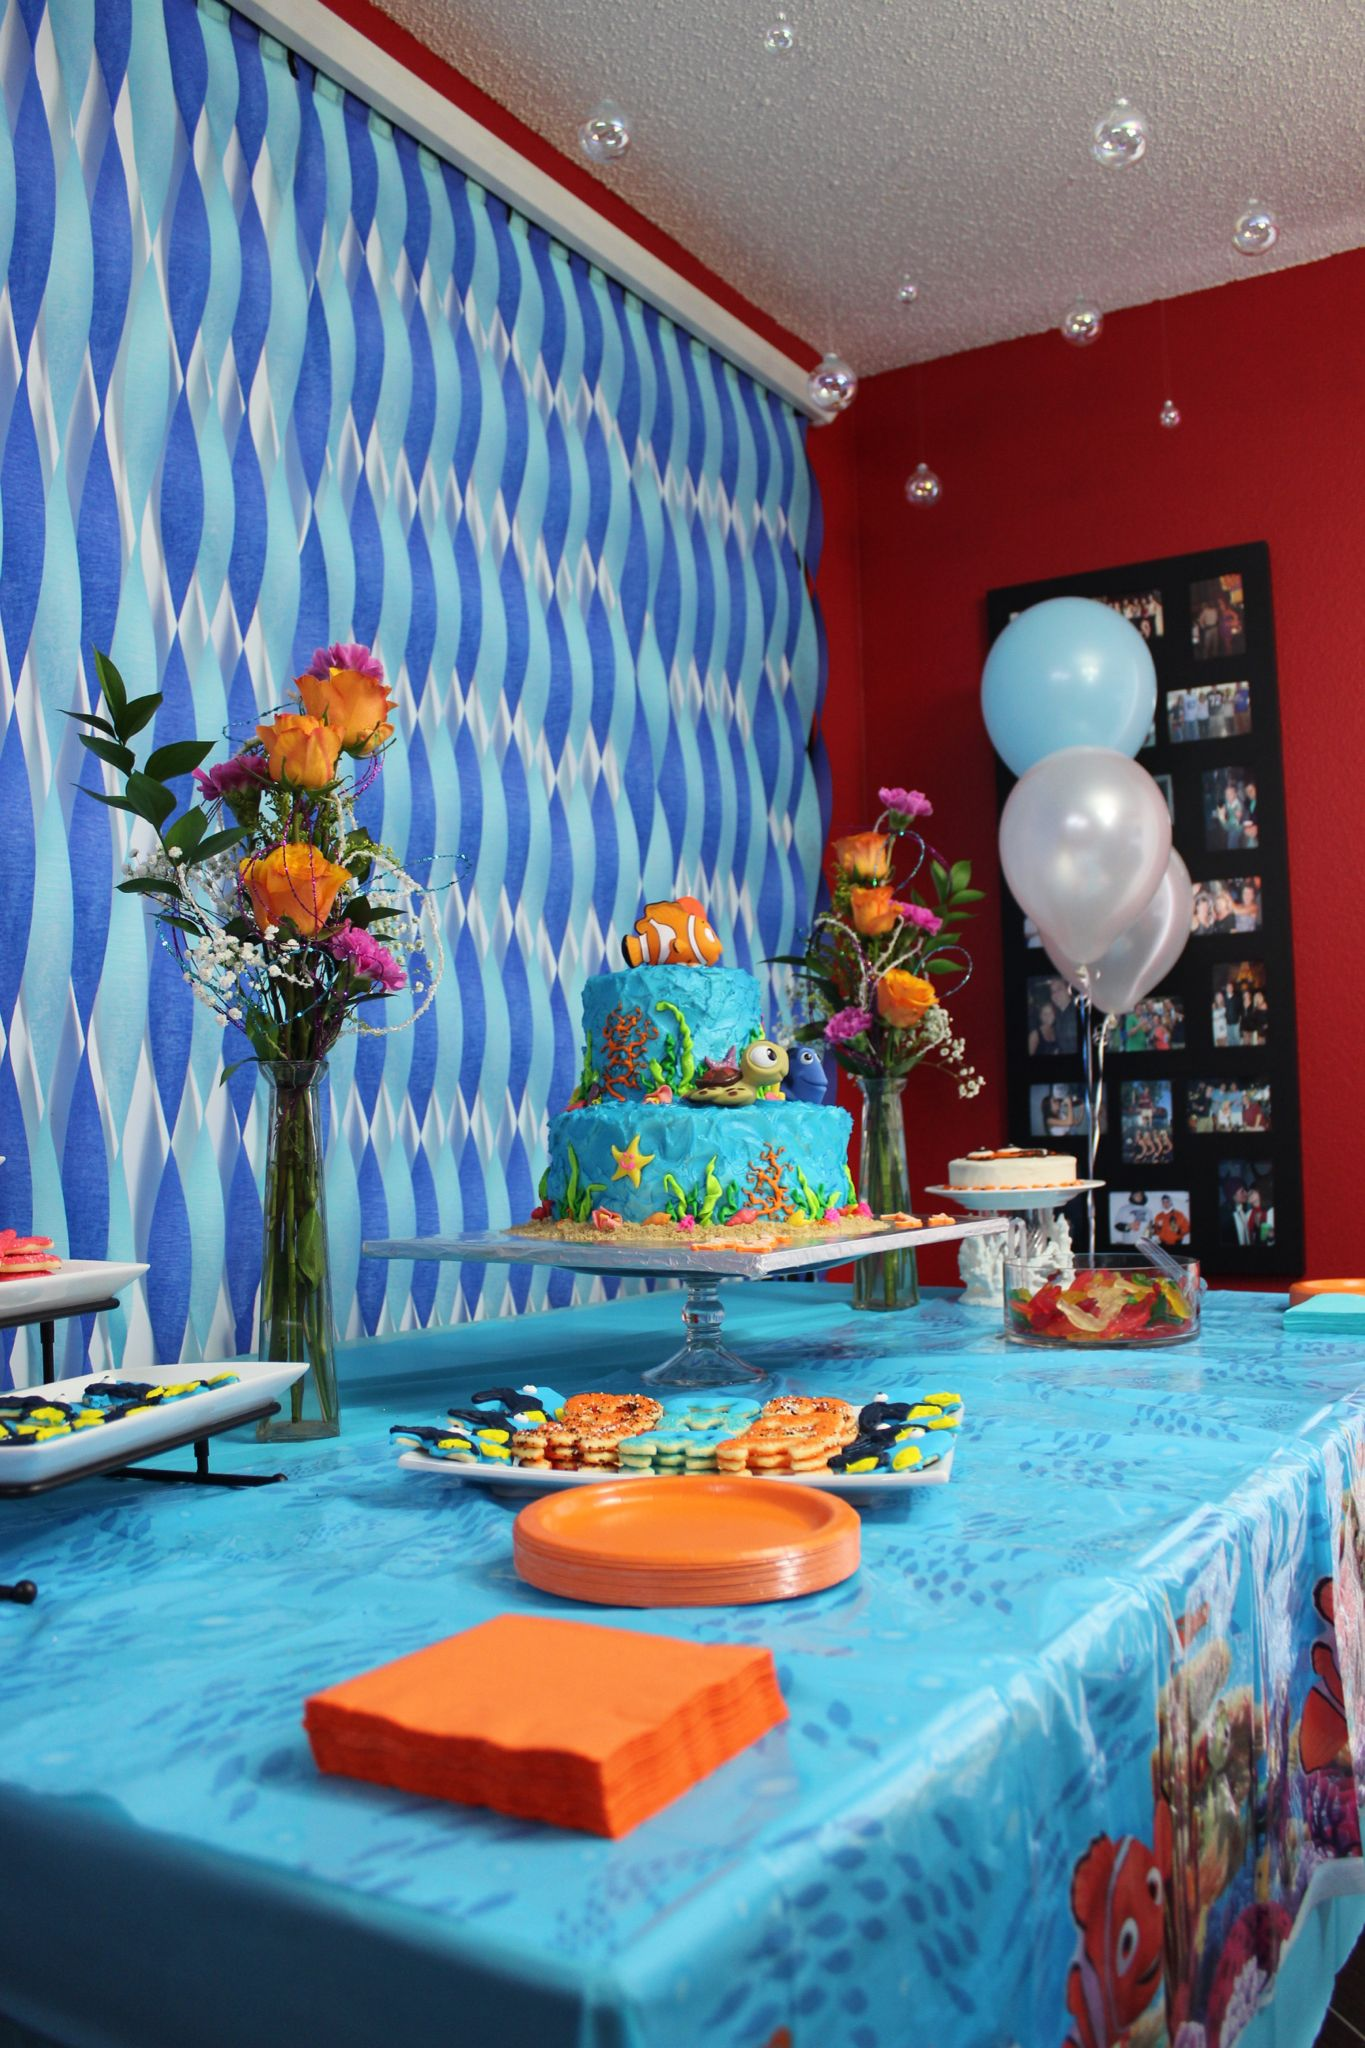 Cake dessert table decorations finding nemo theme party Table decoration ideas for parties